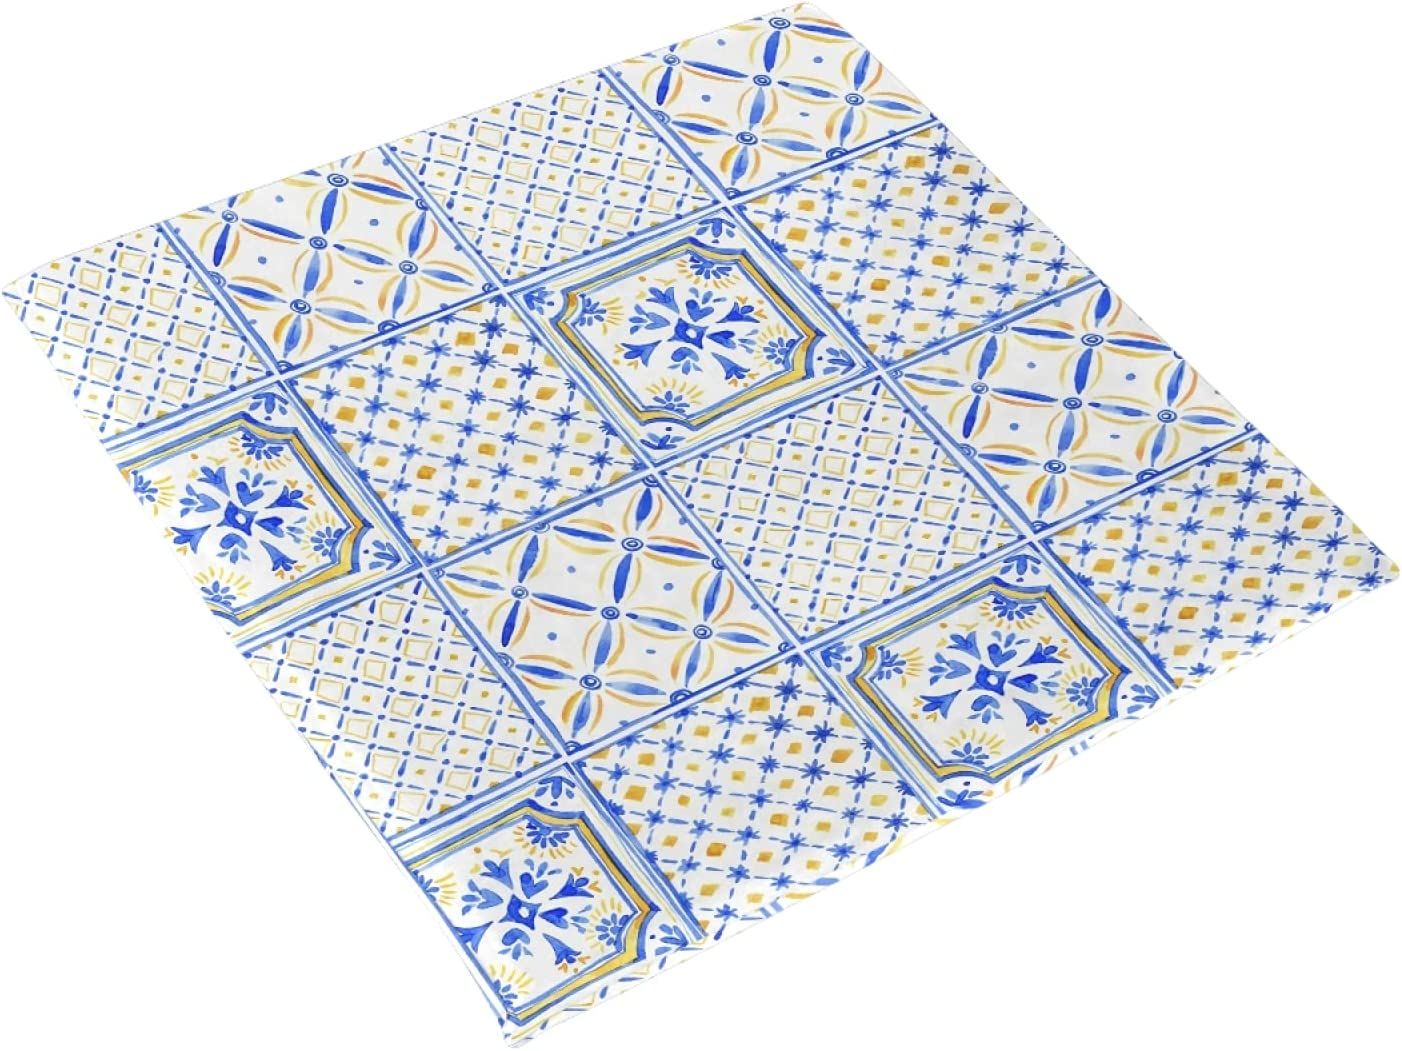 xigua Seat Cushion Many Max 67% OFF popular brands Watercolor Geometric Chair Texture Pa Square